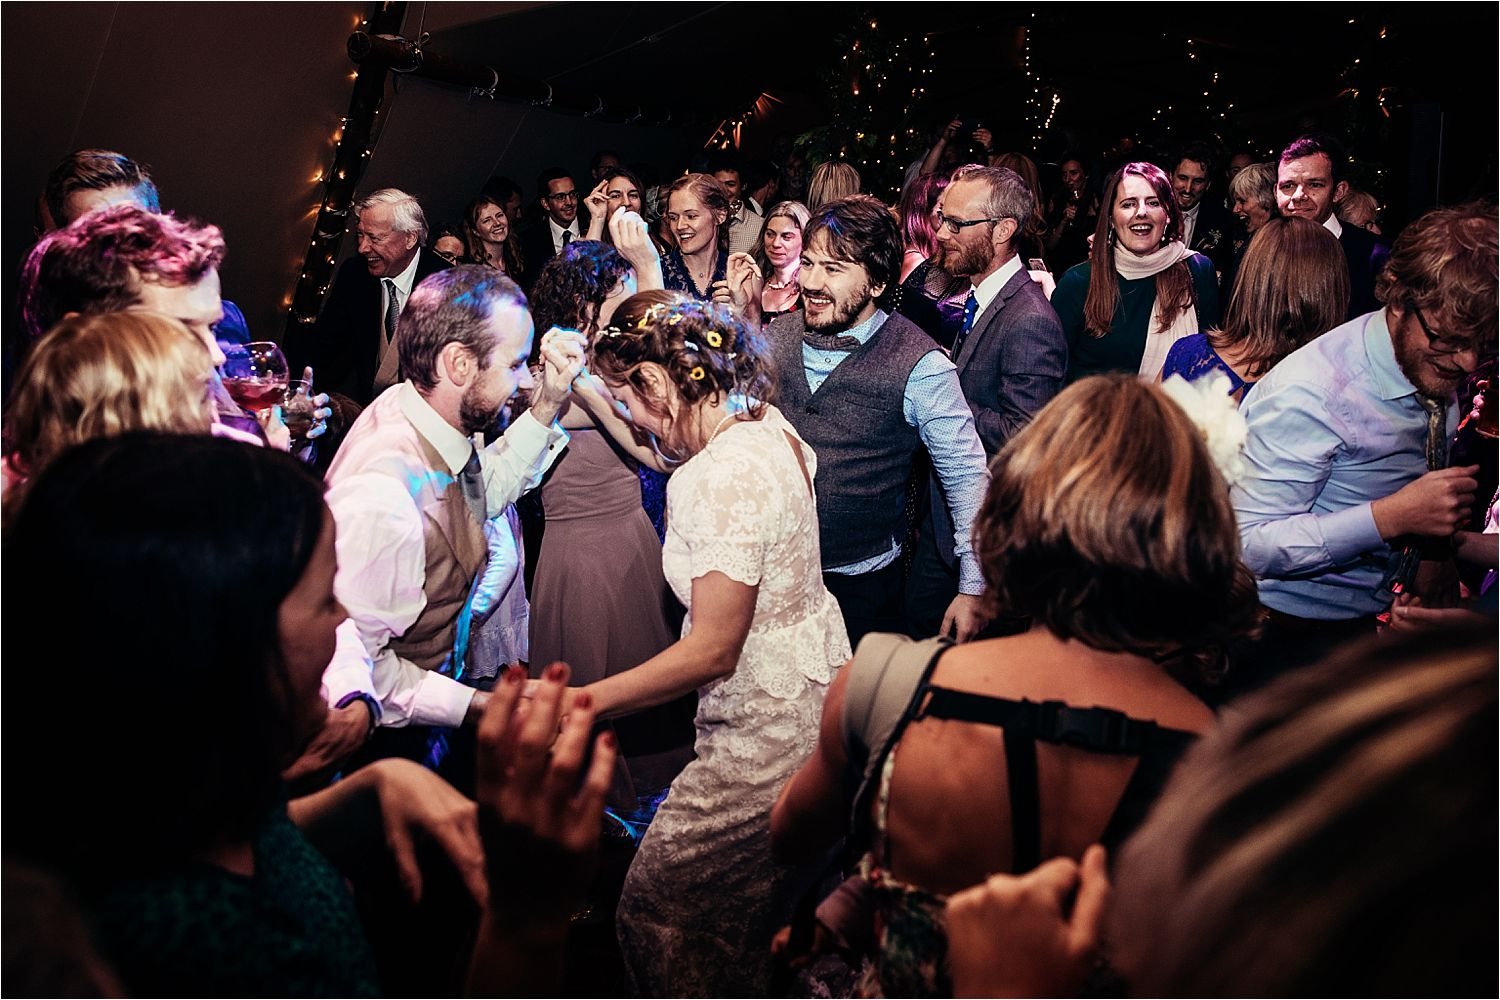 Busy dancefloor at North West tipi wedding, Manchester